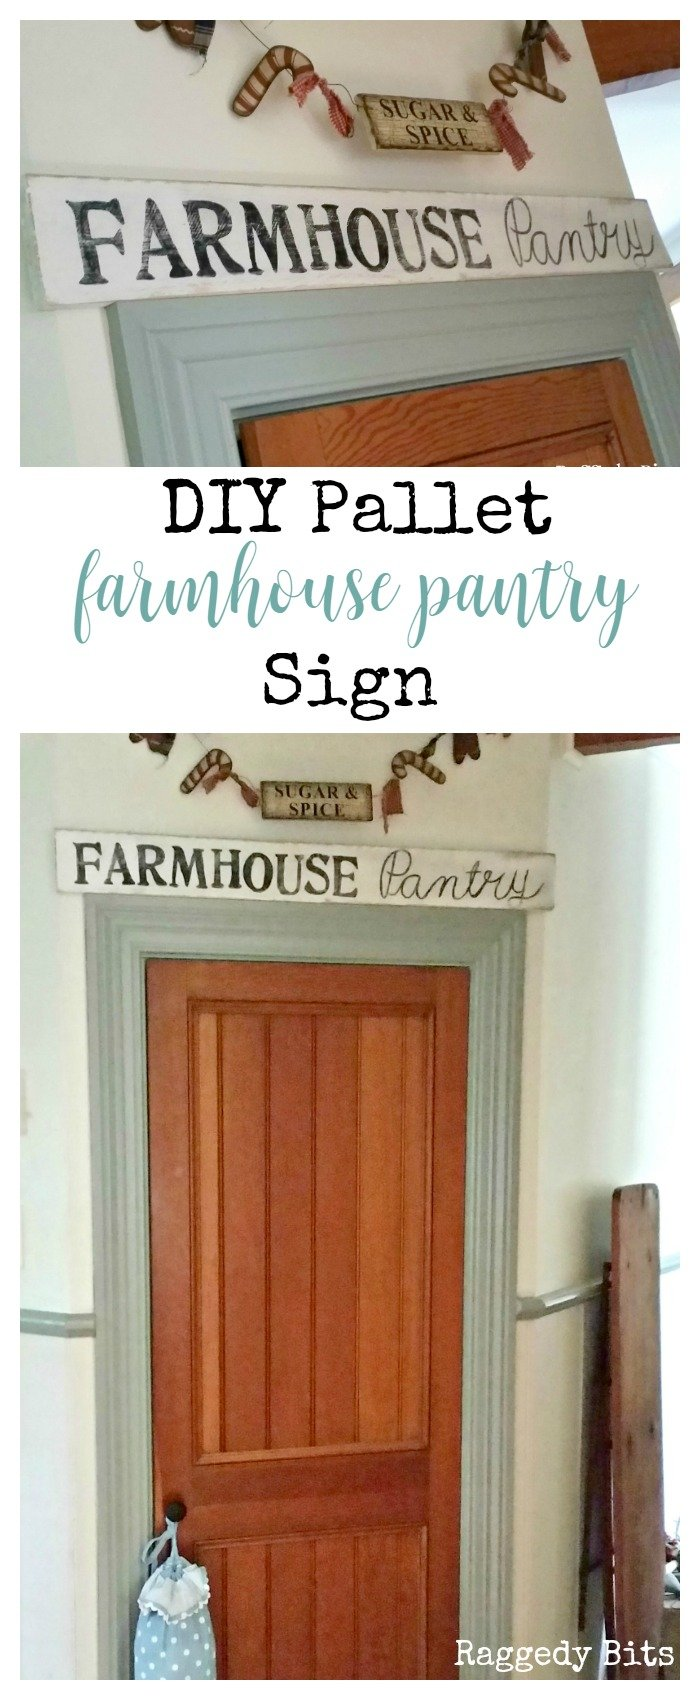 Make your very own DIY Pallet Farmhouse Pantry Sign to add some sweet farmhouse charm to your kitchen | Full tutorial | www.raggedy-bits.com